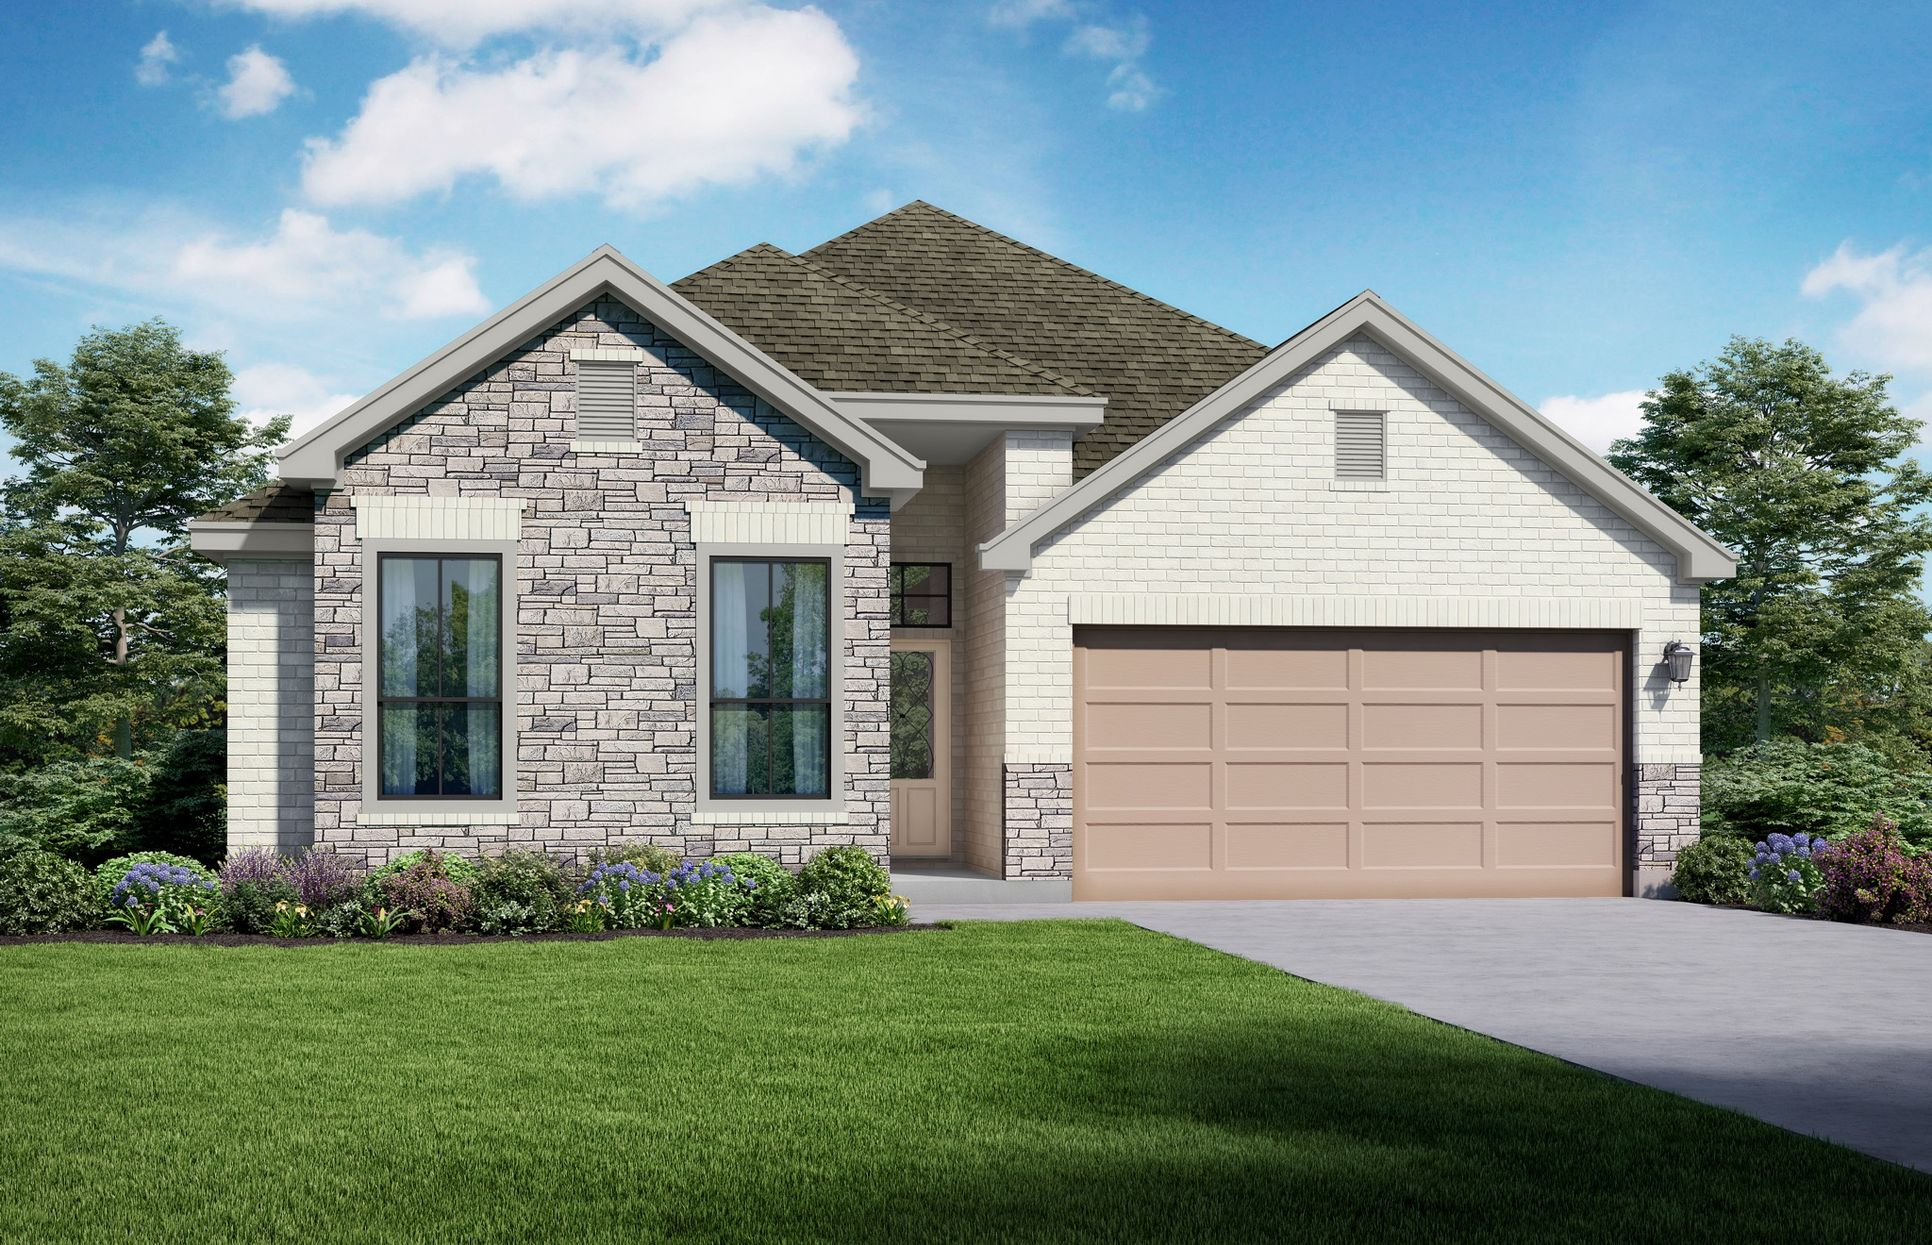 Stonebriar Elevation C + Stone. Images are artist renderings and will differ from the actual home...:Stonebriar Elevation C + Stone